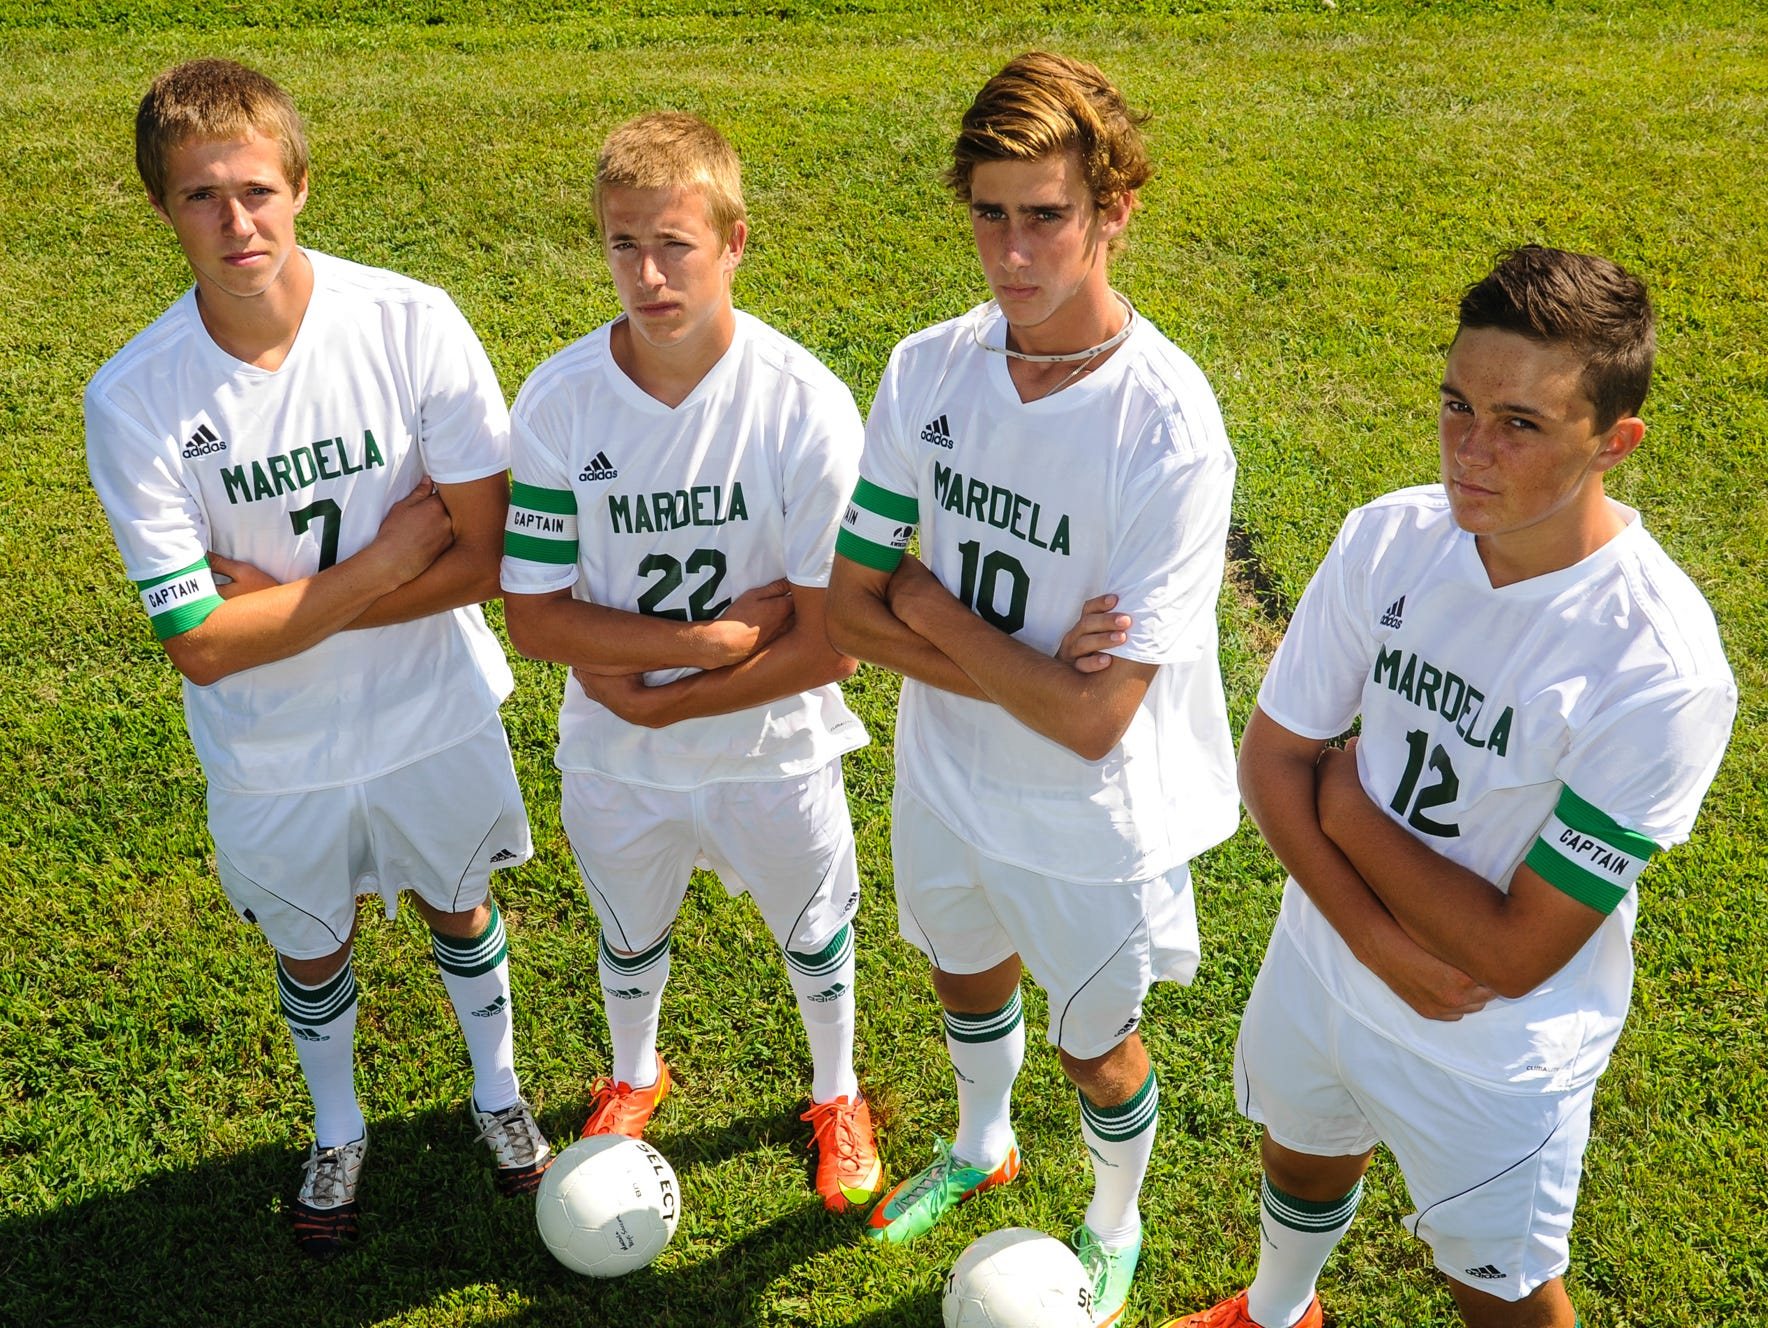 Mardela High's senior captains Shawn Pope, Will Pope, Mike Momme and Austin Gray will look to lead the Warriors even further in the Maryland state tournament this season. The team fell in the semifinals last year to North Carroll.